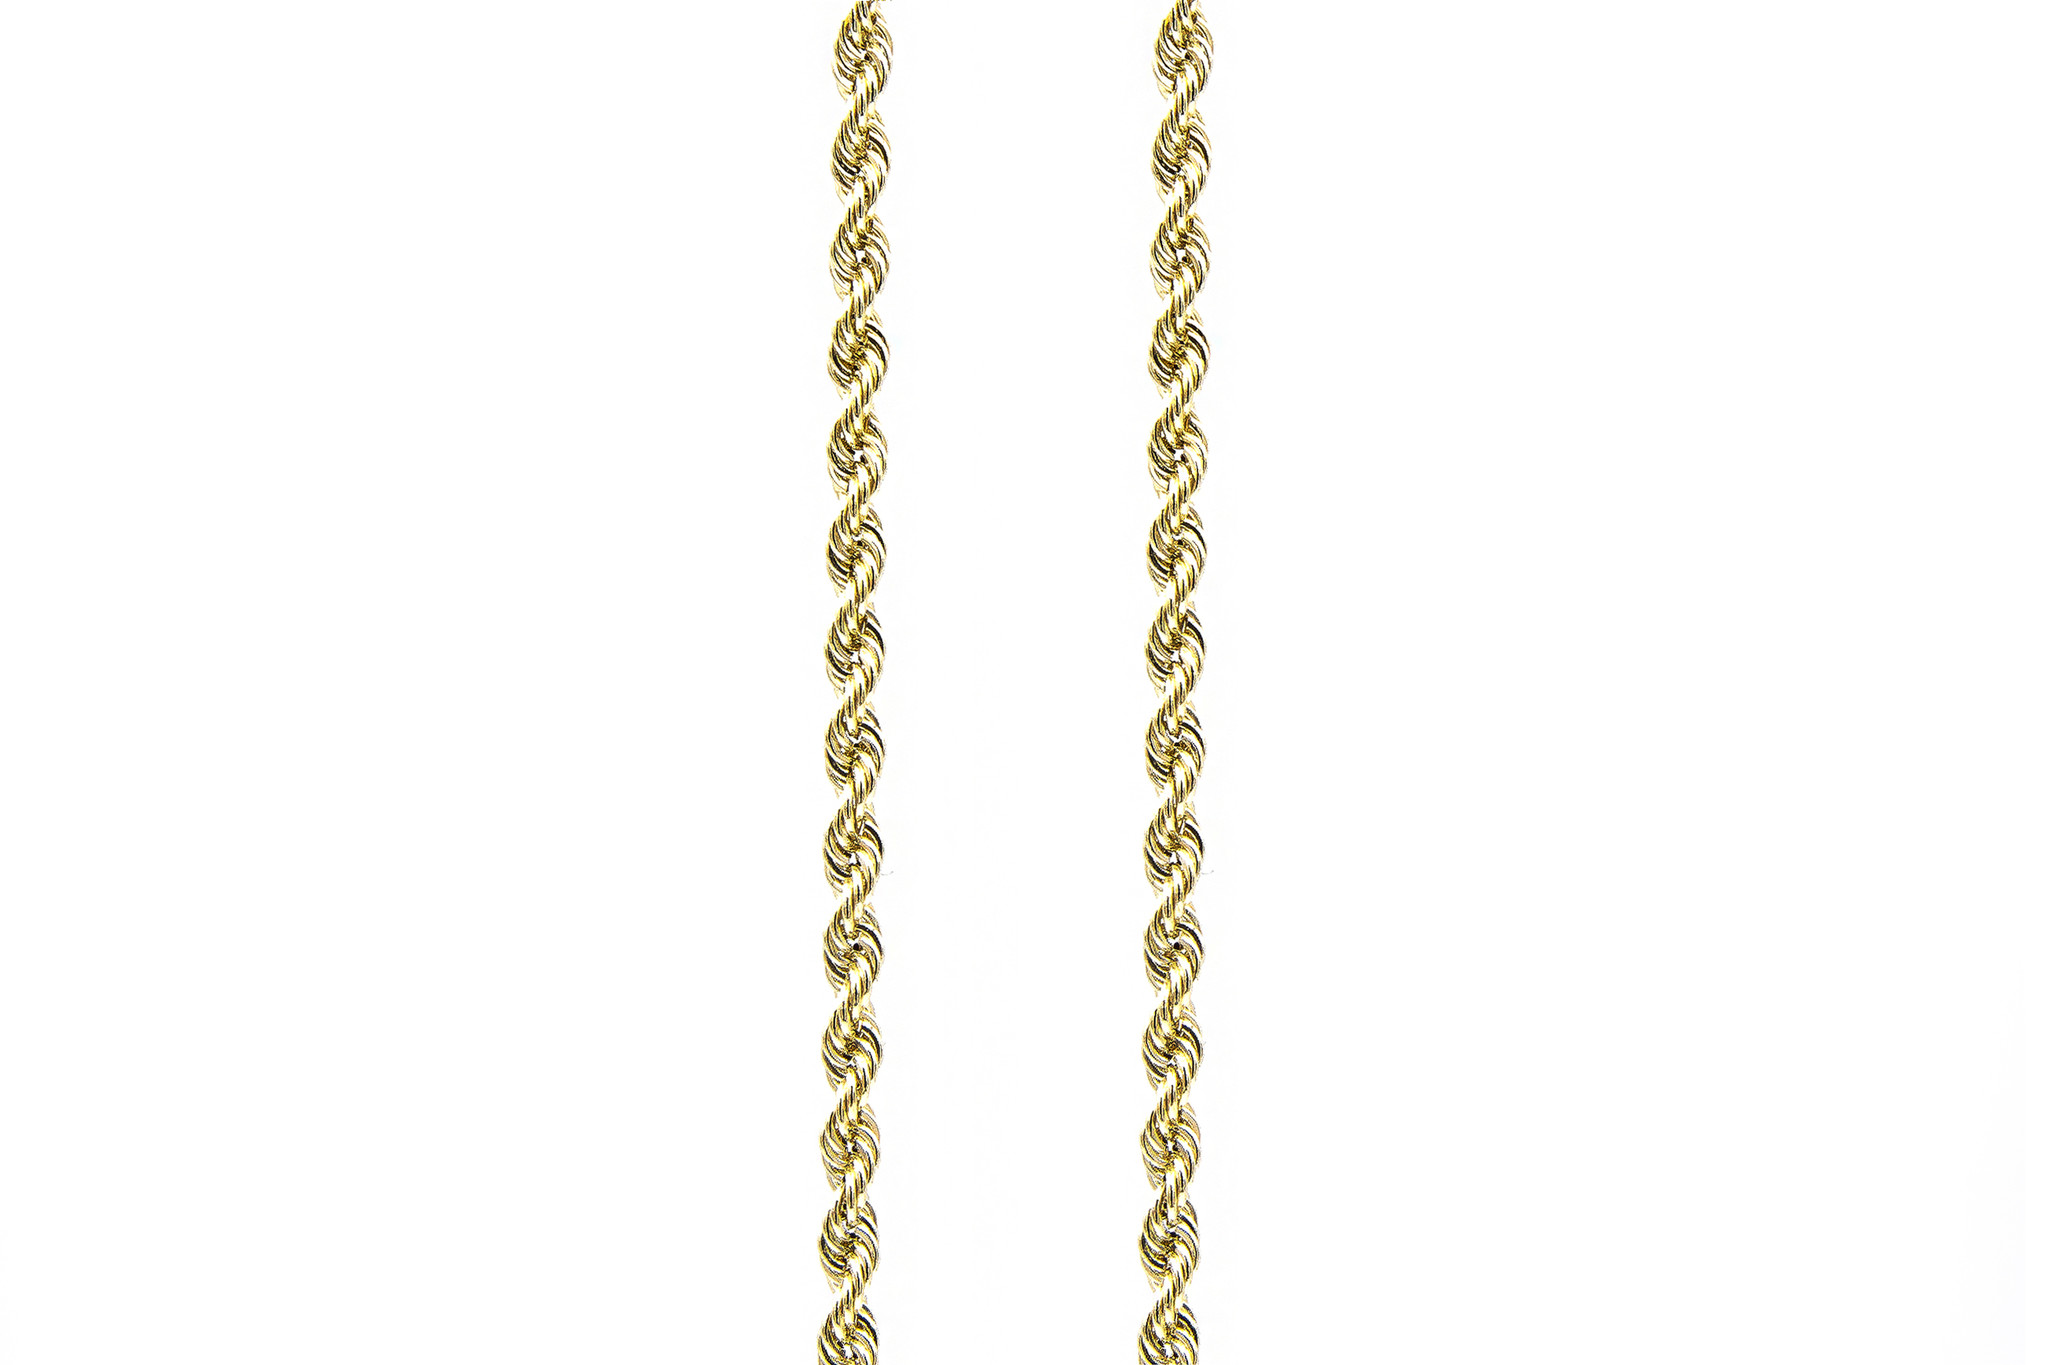 Rope Chain 14k - 4 mm-1